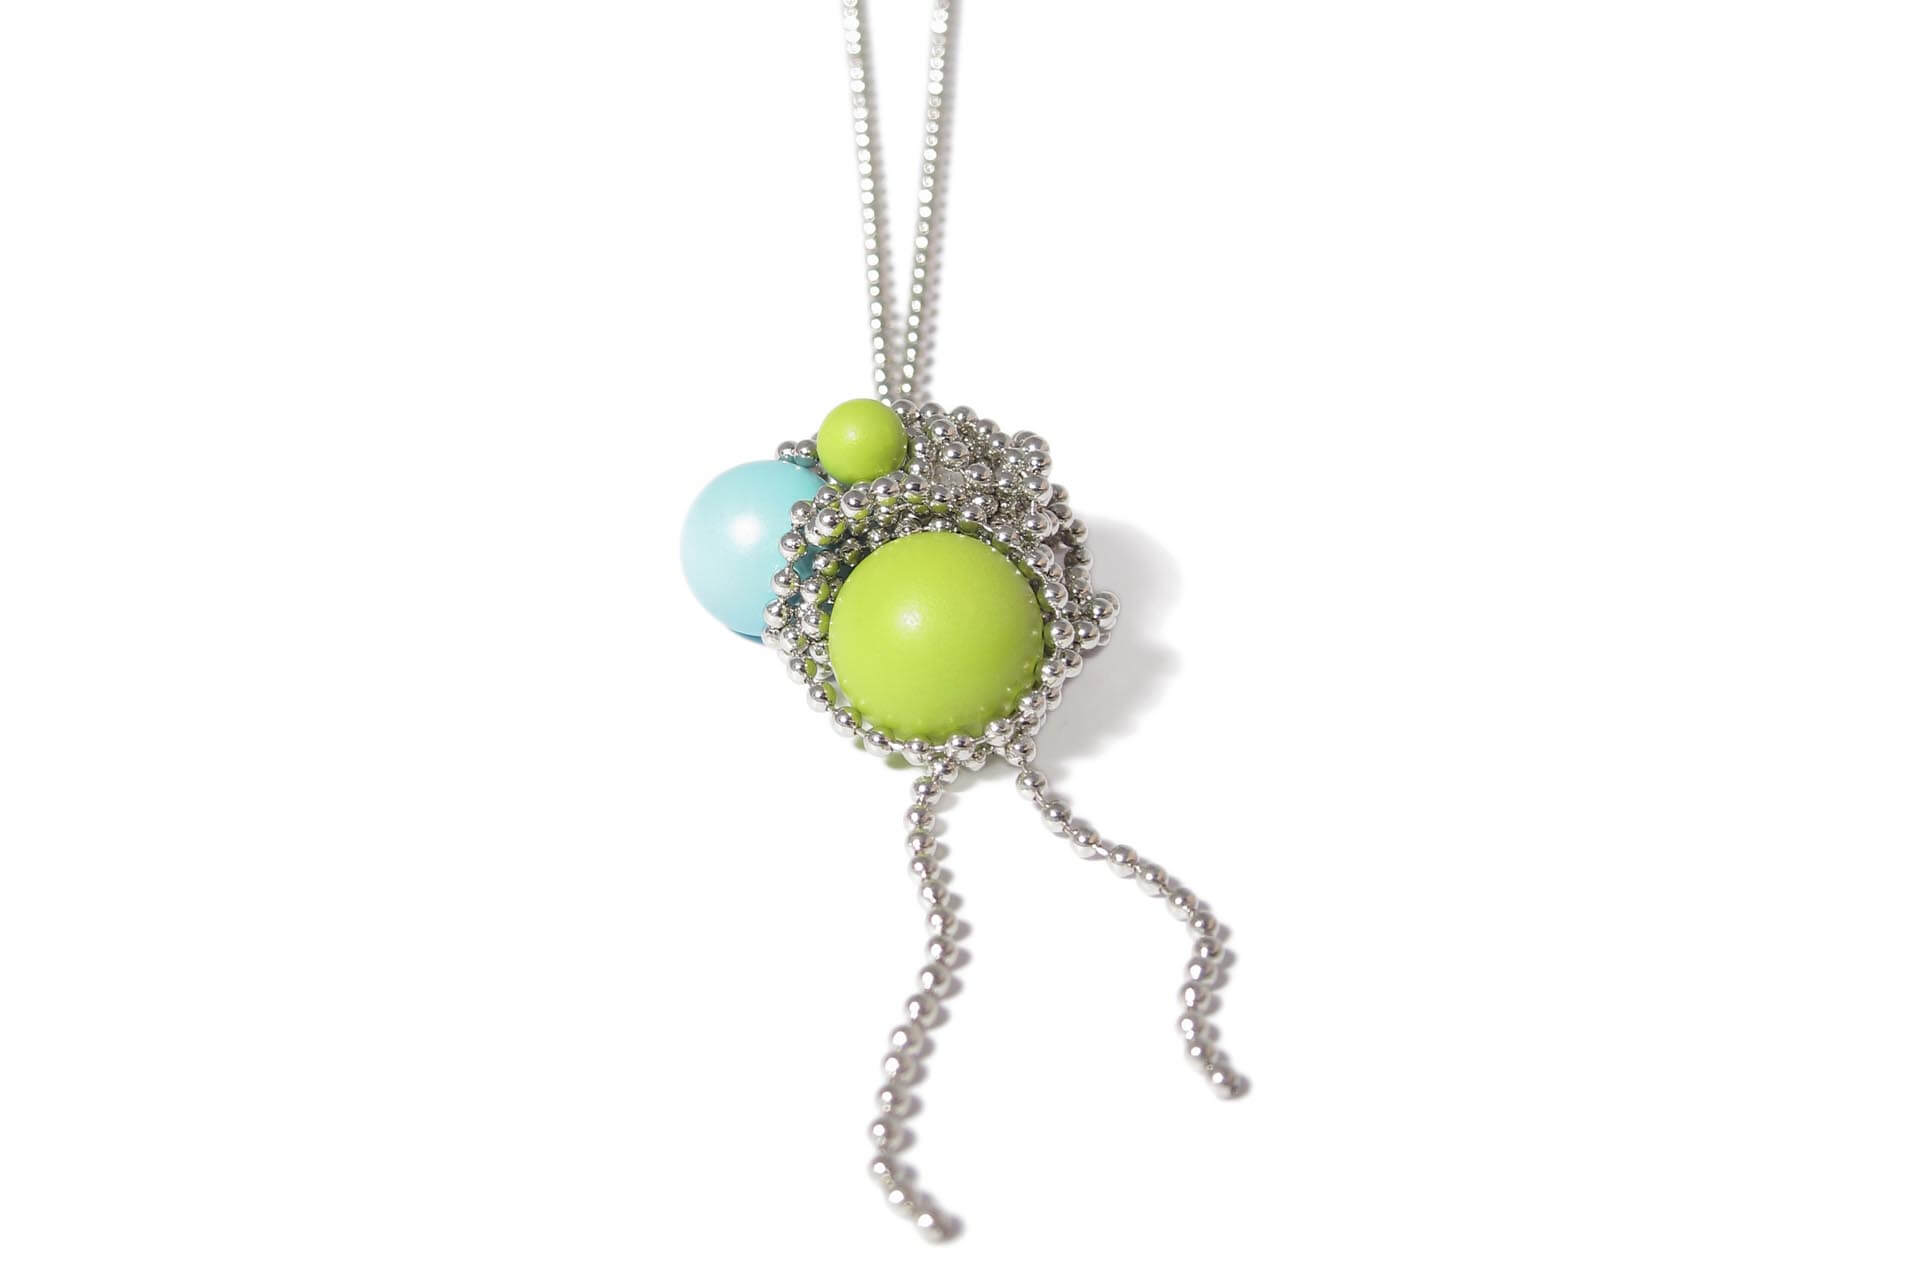 Iris Weyer magnetic necklace with colourful balls